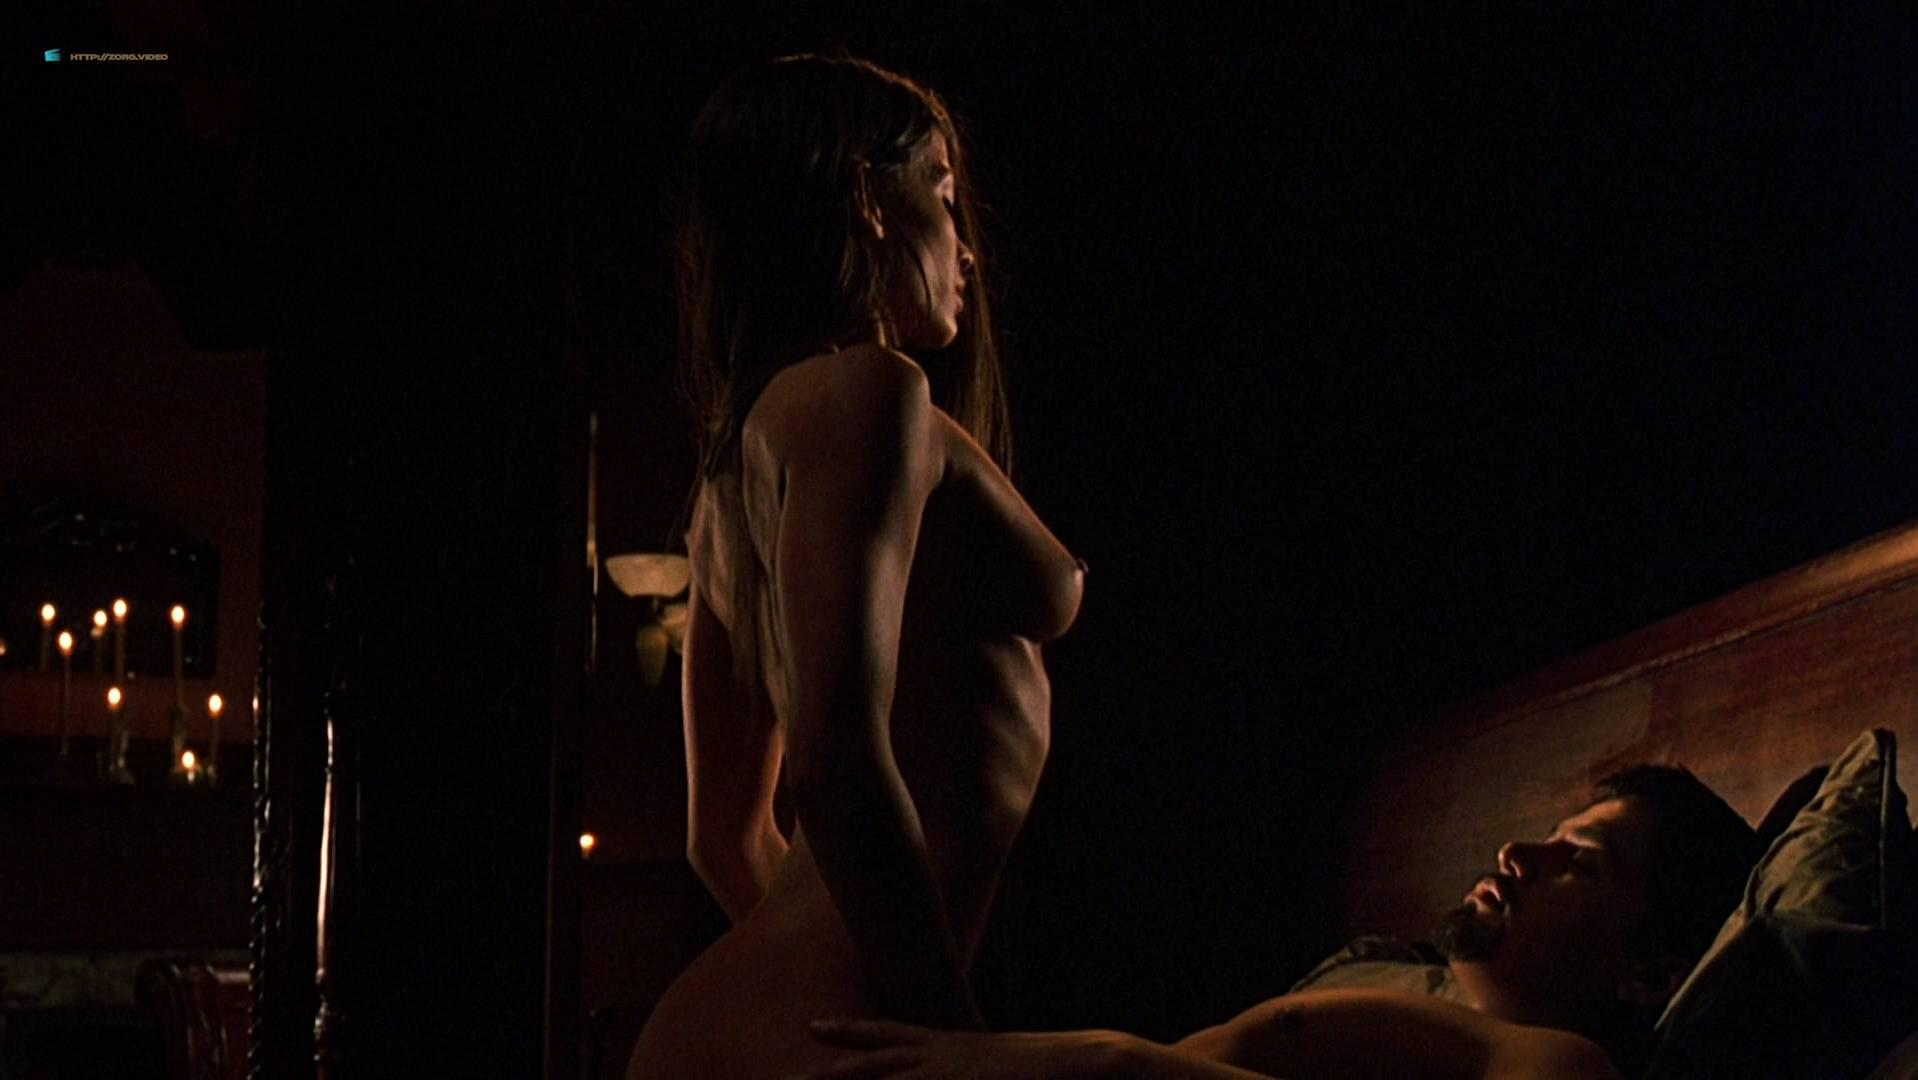 Jaclyn DeSantis nude, Julie McNiven nude, Misha Sedgwick nude - Carlito's Way: Rise to Power (2005)